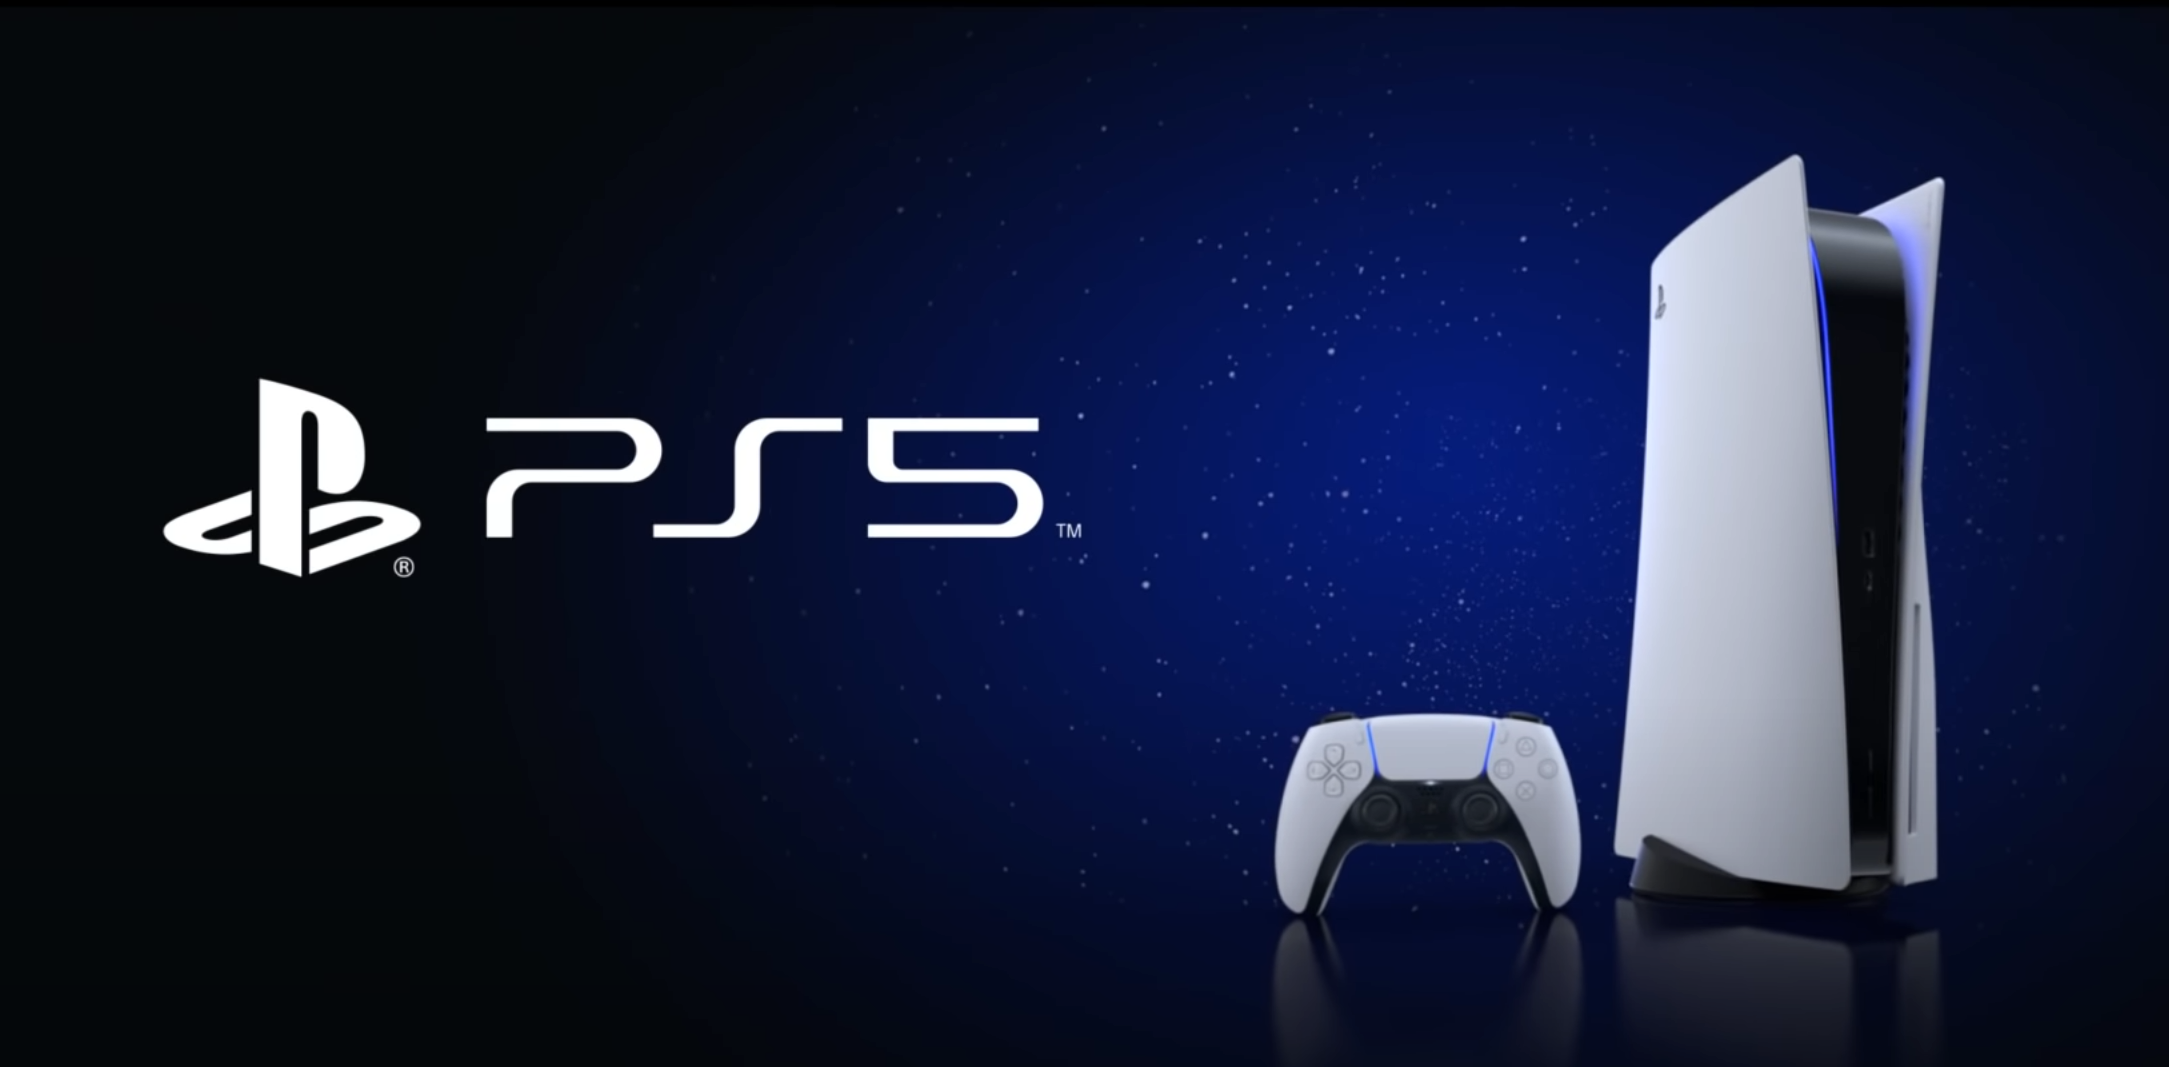 Playstation 5 has now sold over 10 million copies